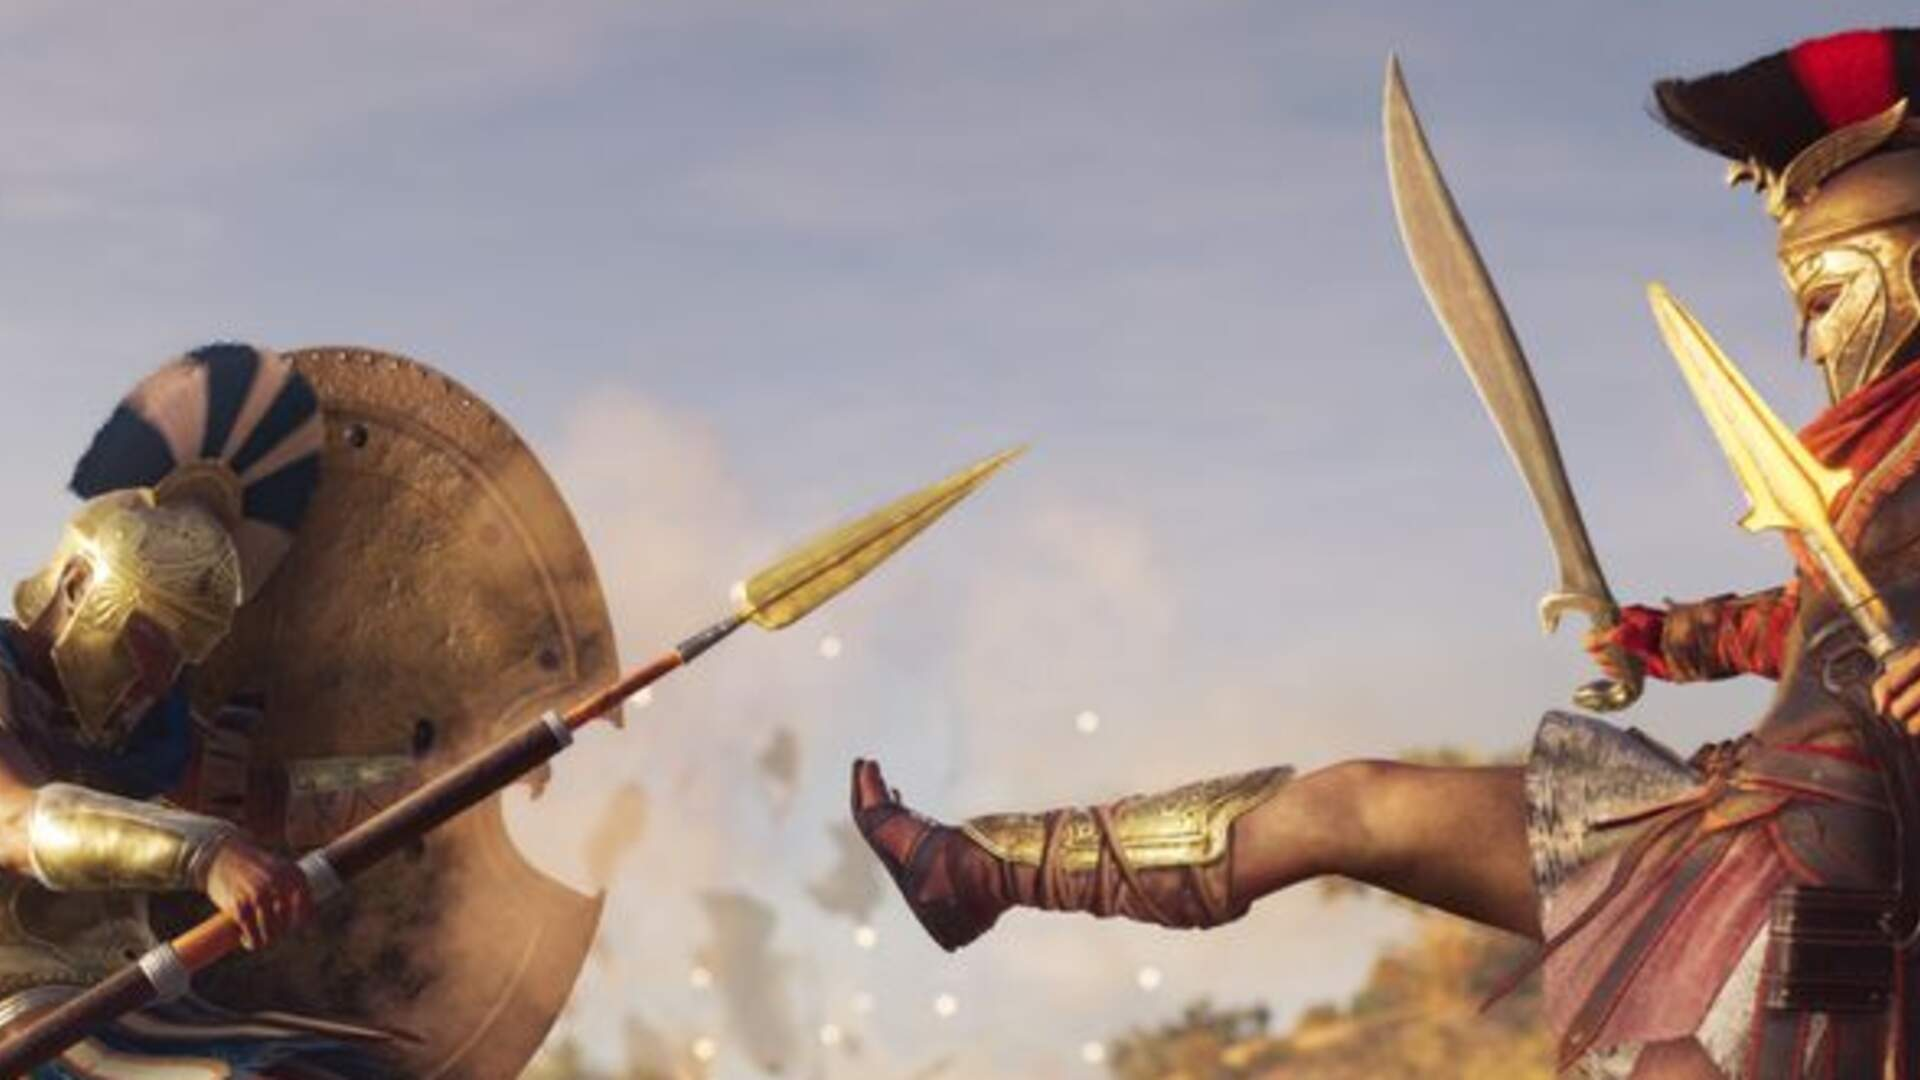 Our Favorite Videos of Assassin's Creed Odyssey's Spartan Kick: The Best Move in the Game